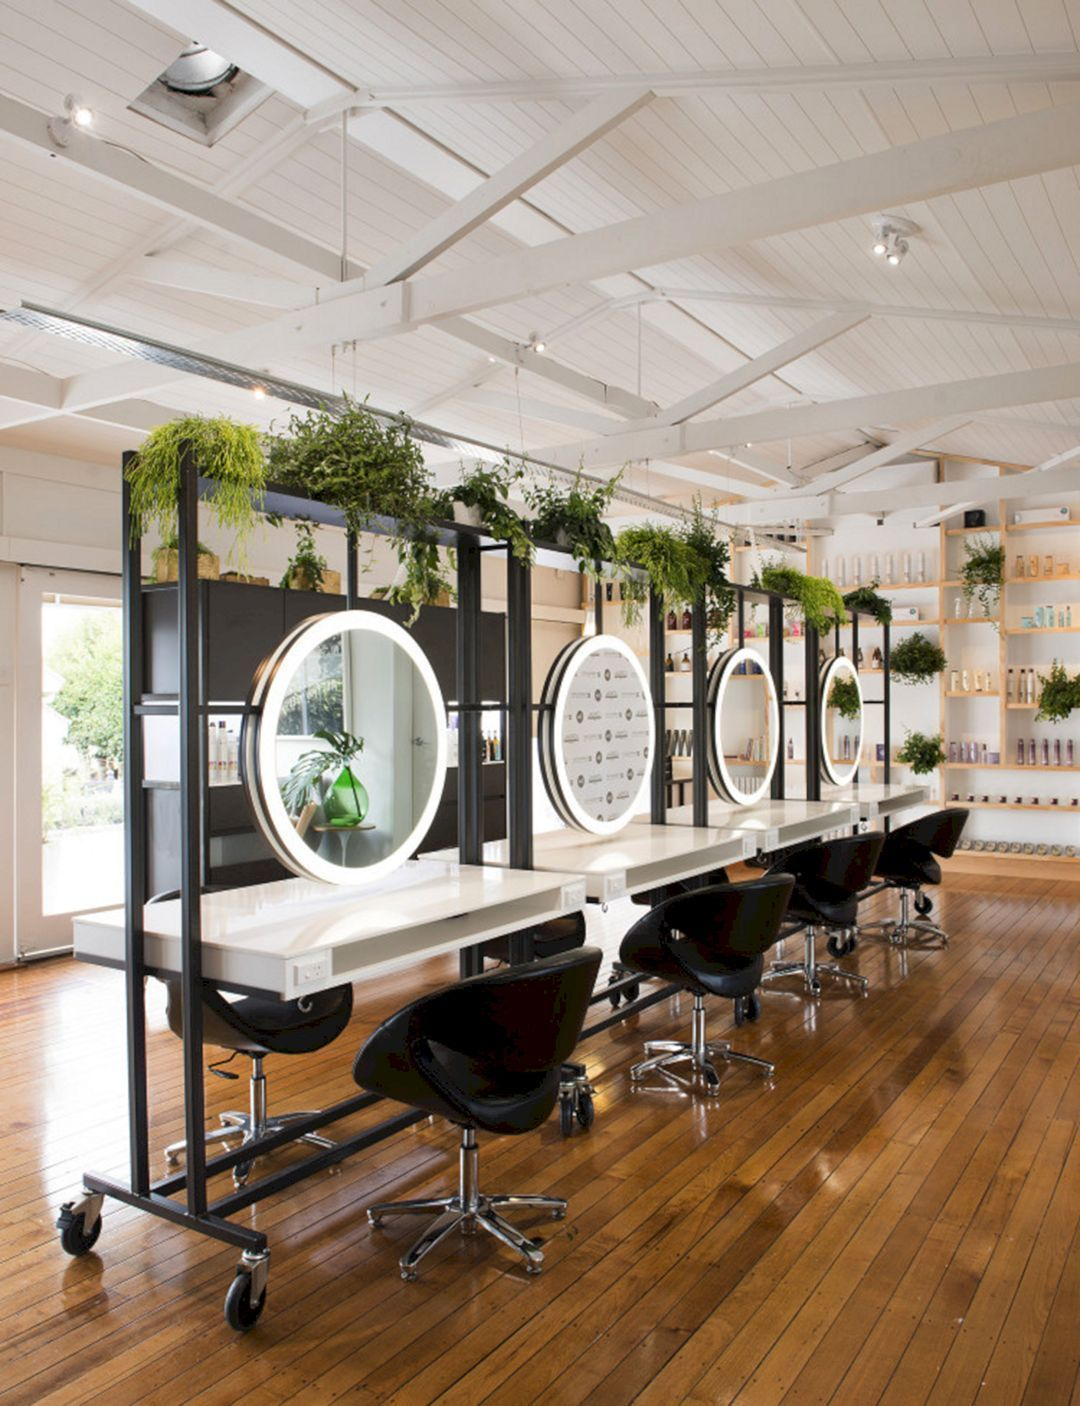 Best Images About Beauty Home Salon Decor Ideas 20 (Best Images